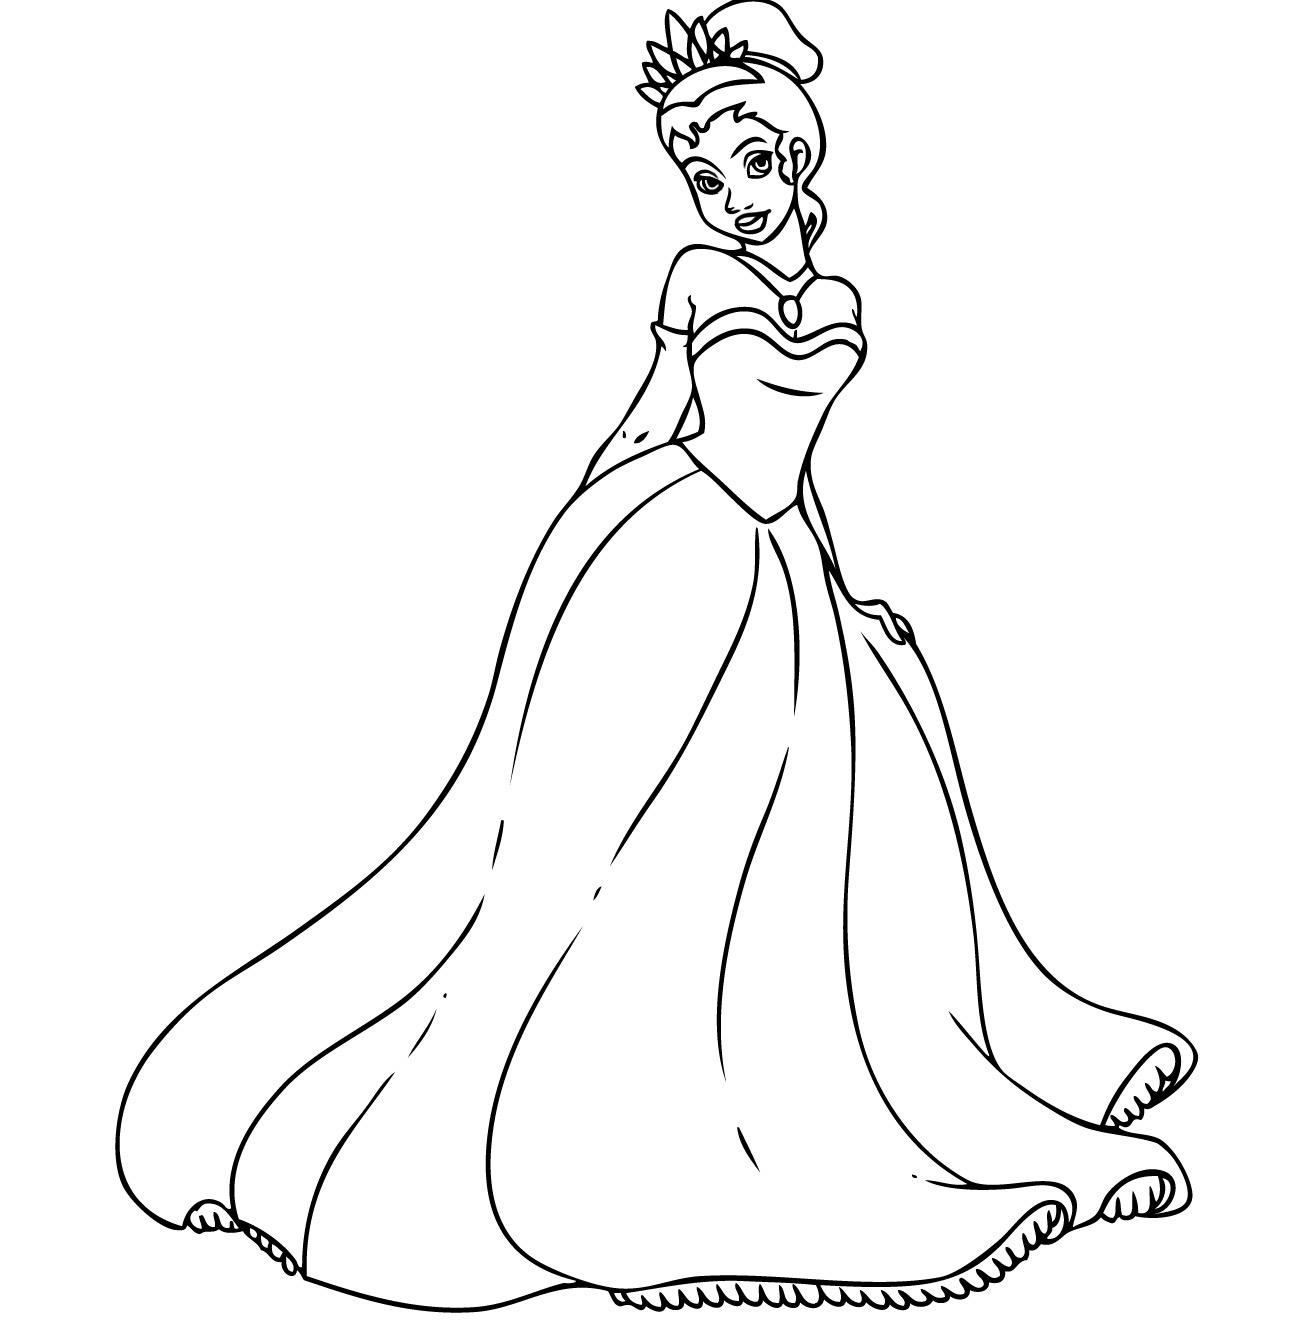 coloring pages of princess tiana - Fill In Coloring Pages